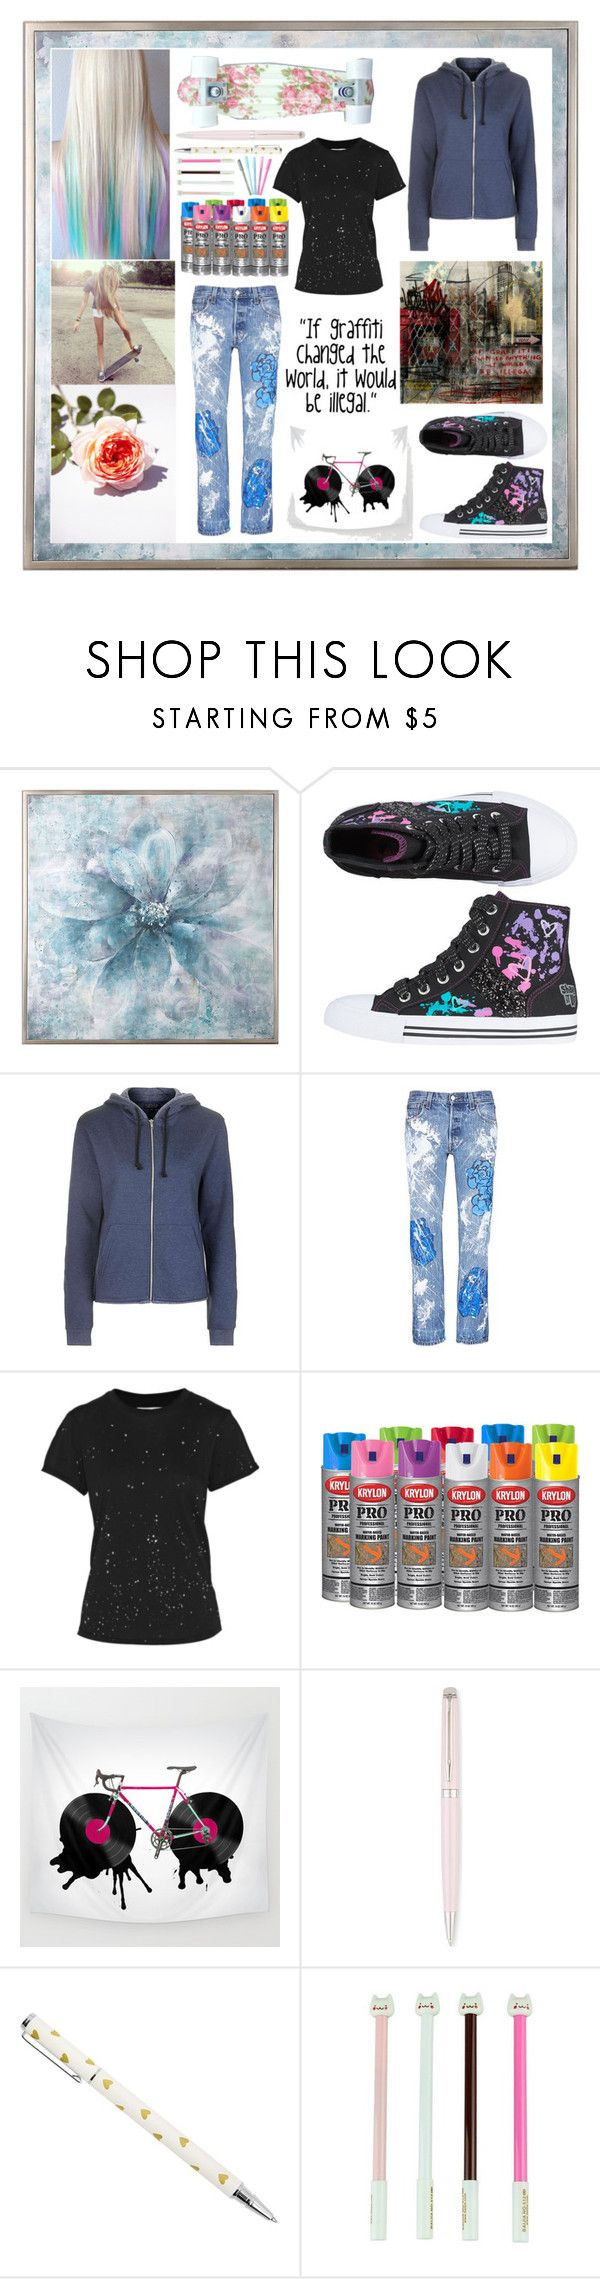 """""""Danganronpa OC: Linda Fukori (Super High School Level Artist)"""" by the-real-fangirl-trash ❤ liked on Polyvore featuring Uttermost, Topshop, Rialto Jean Project, Current/Elliott and Waterman"""